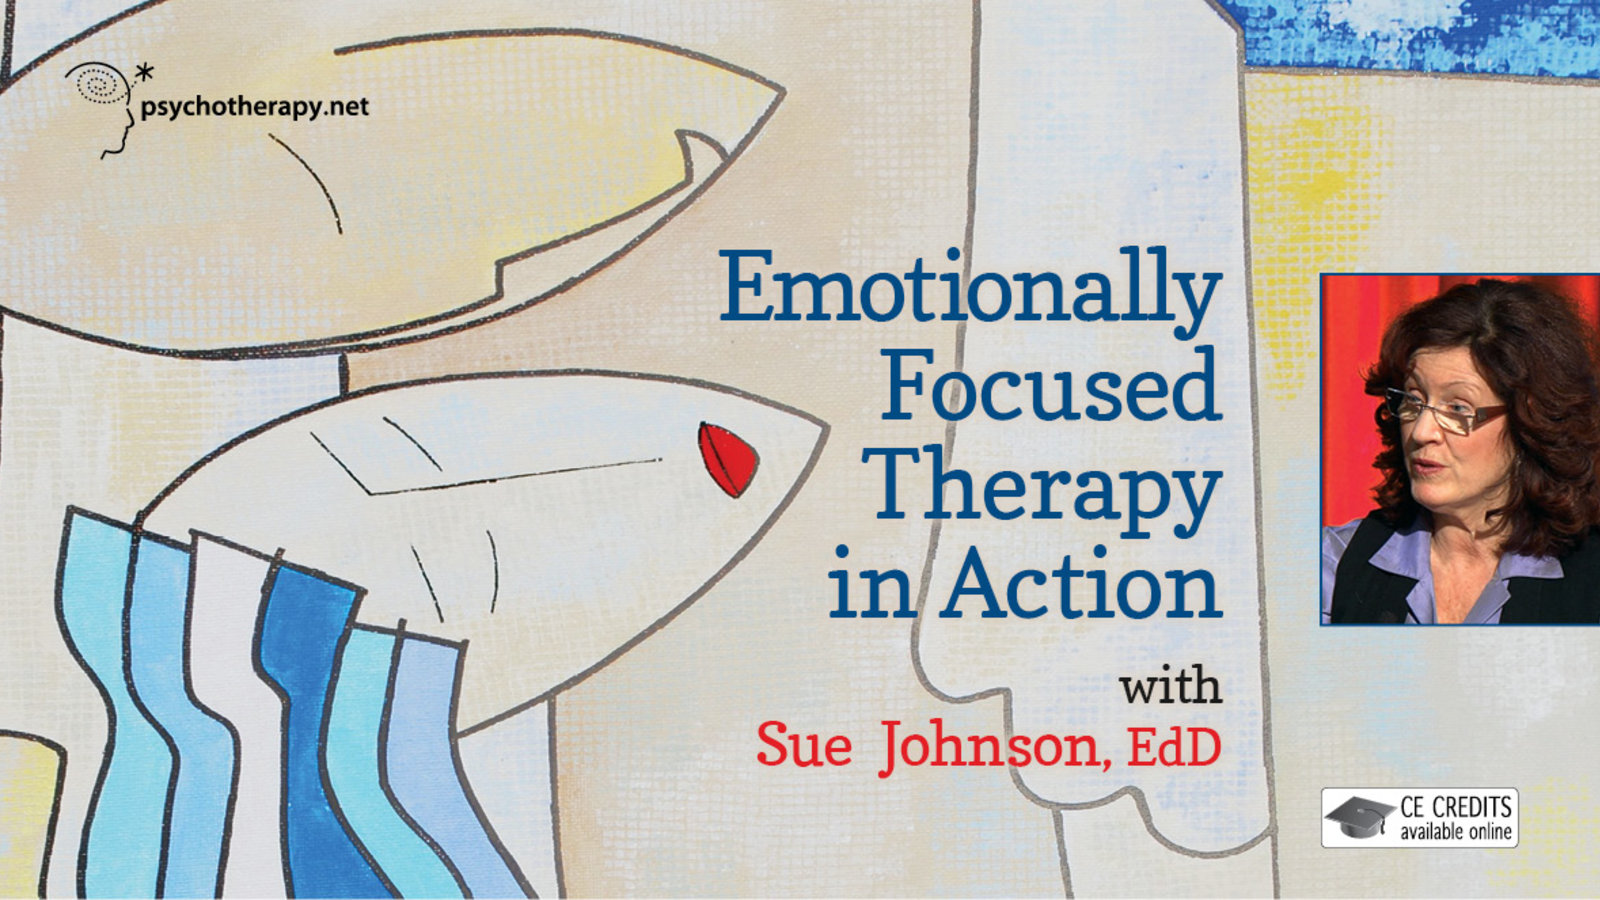 Emotionally Focused Therapy in Action - With Sue Johnson